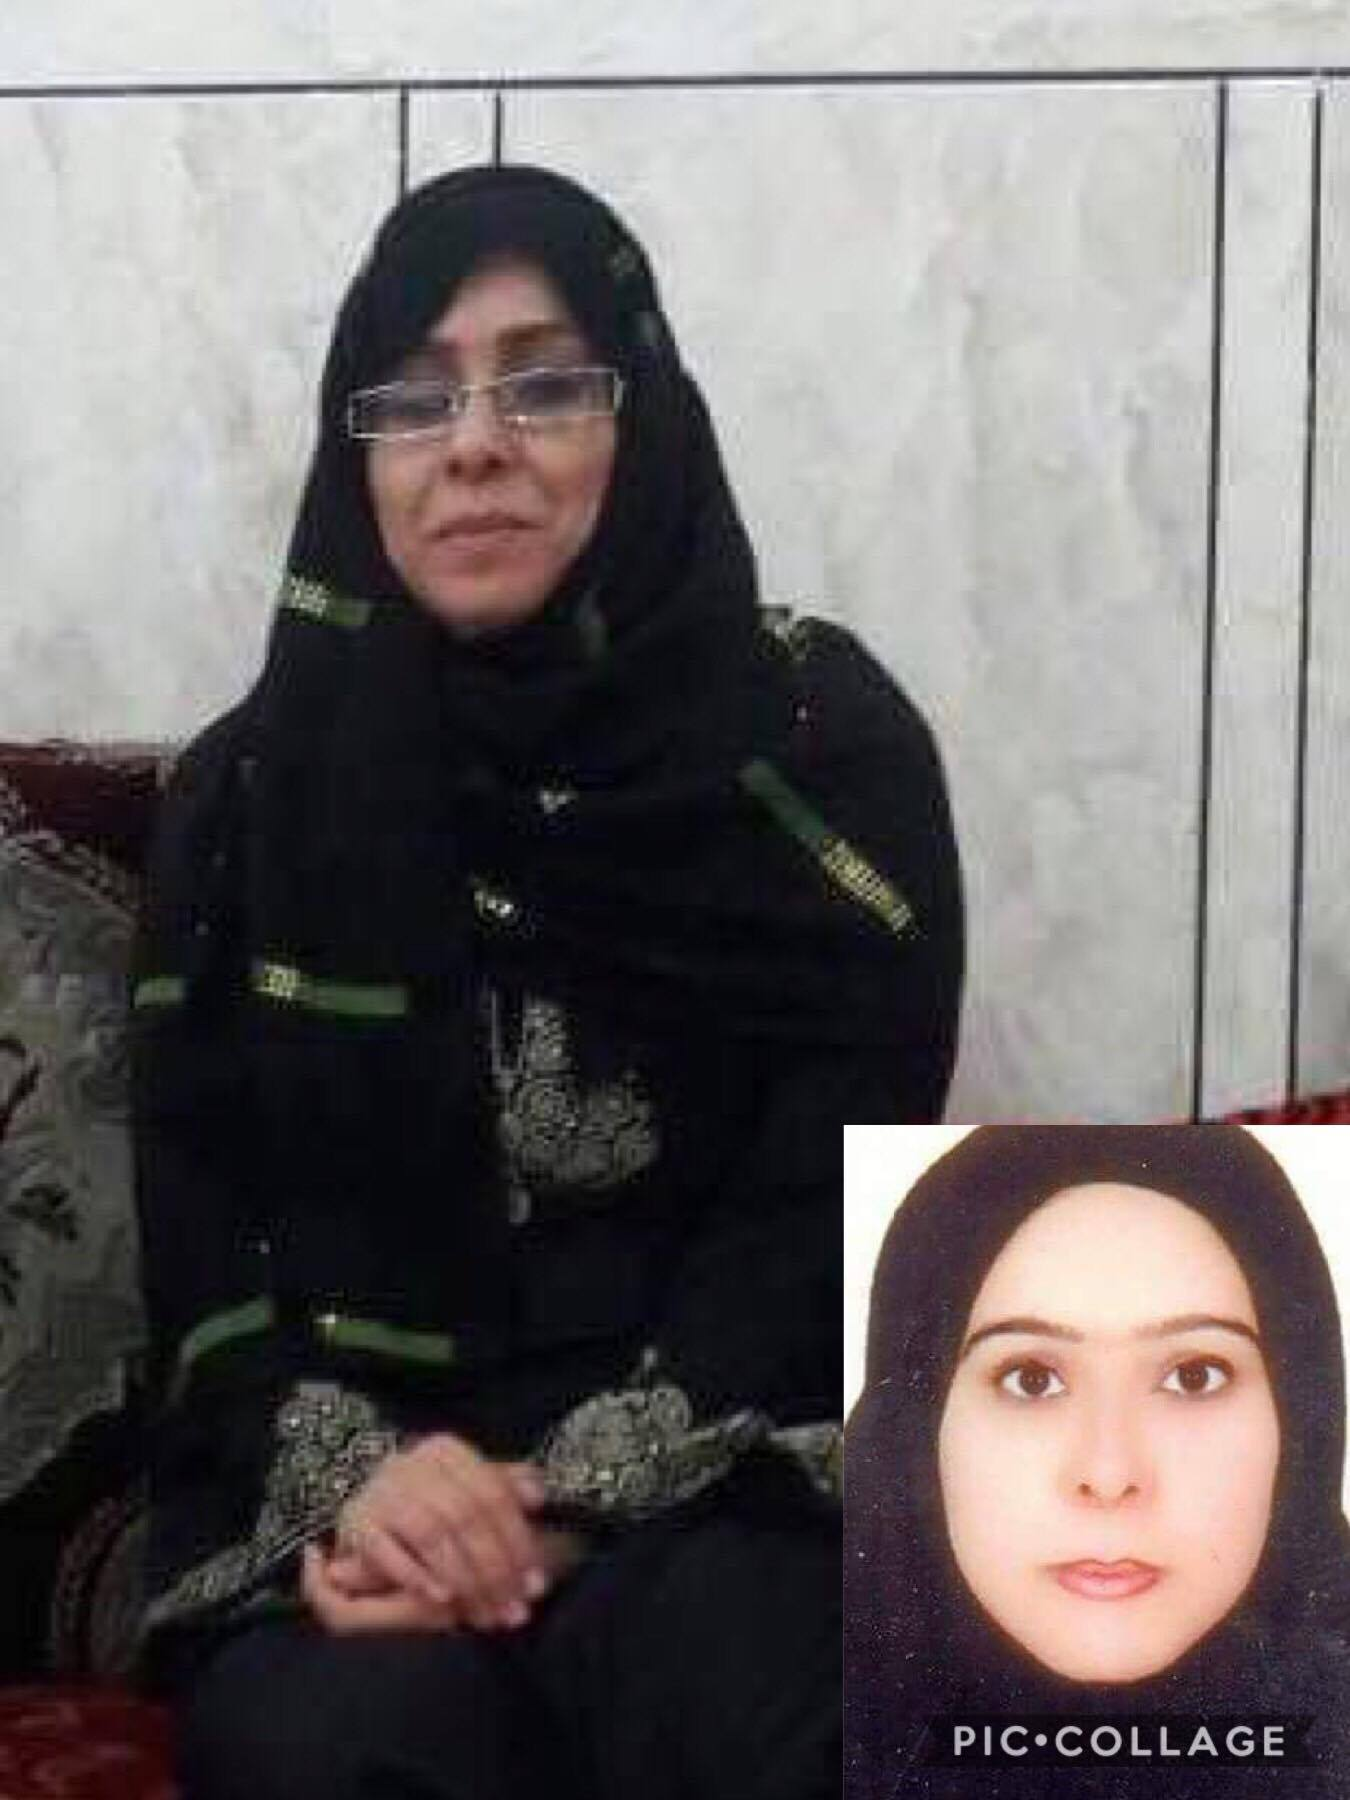 Release of the female Ahwazi political prisoner